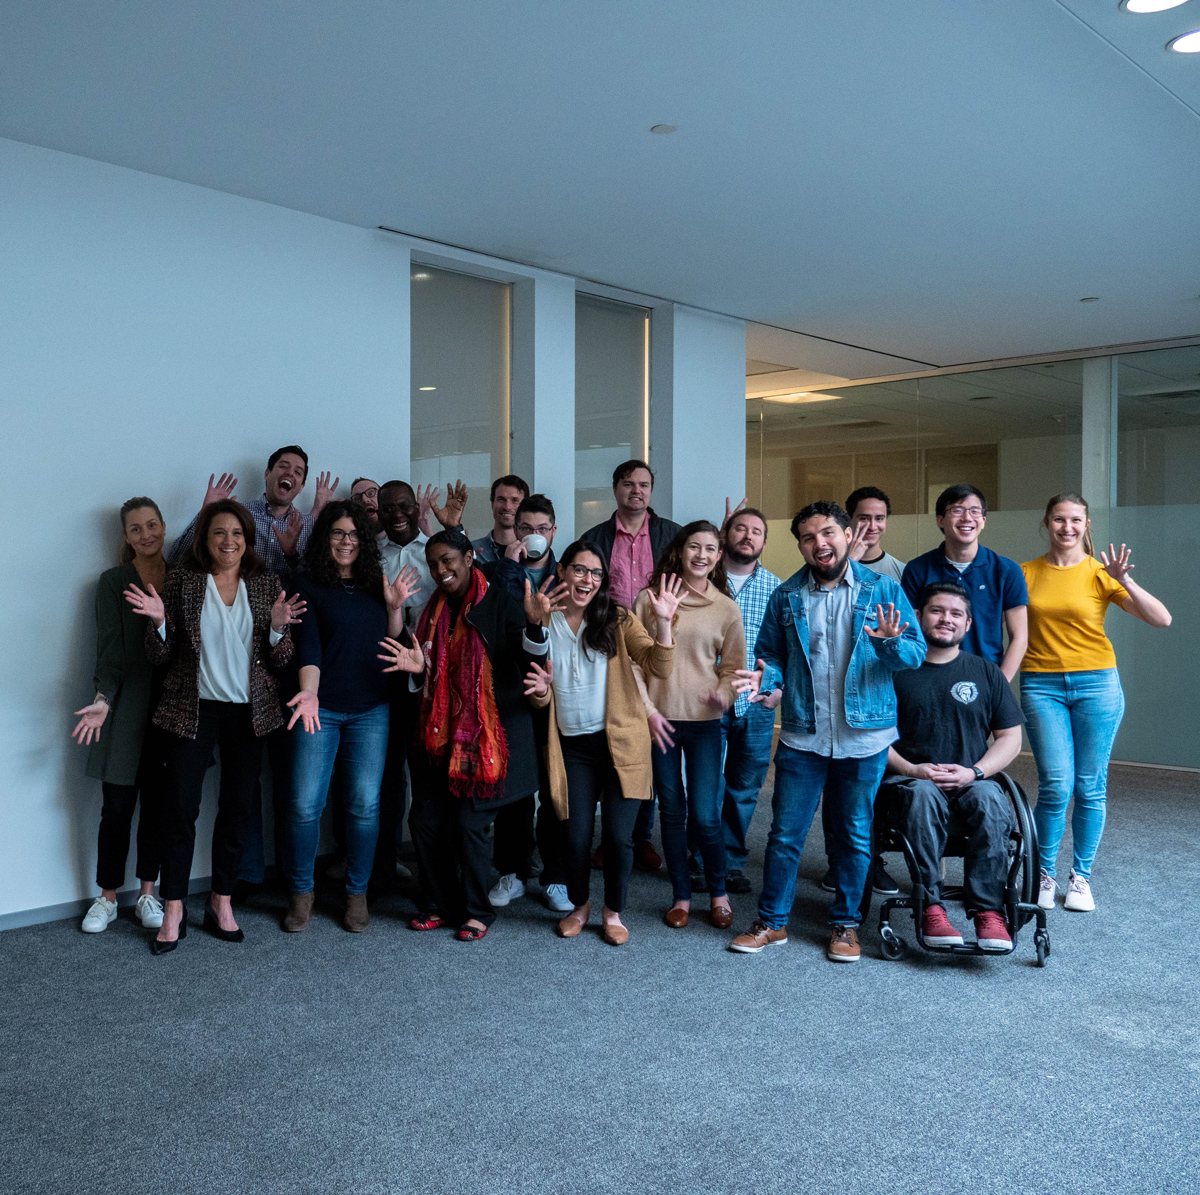 A group photo of poetic employees